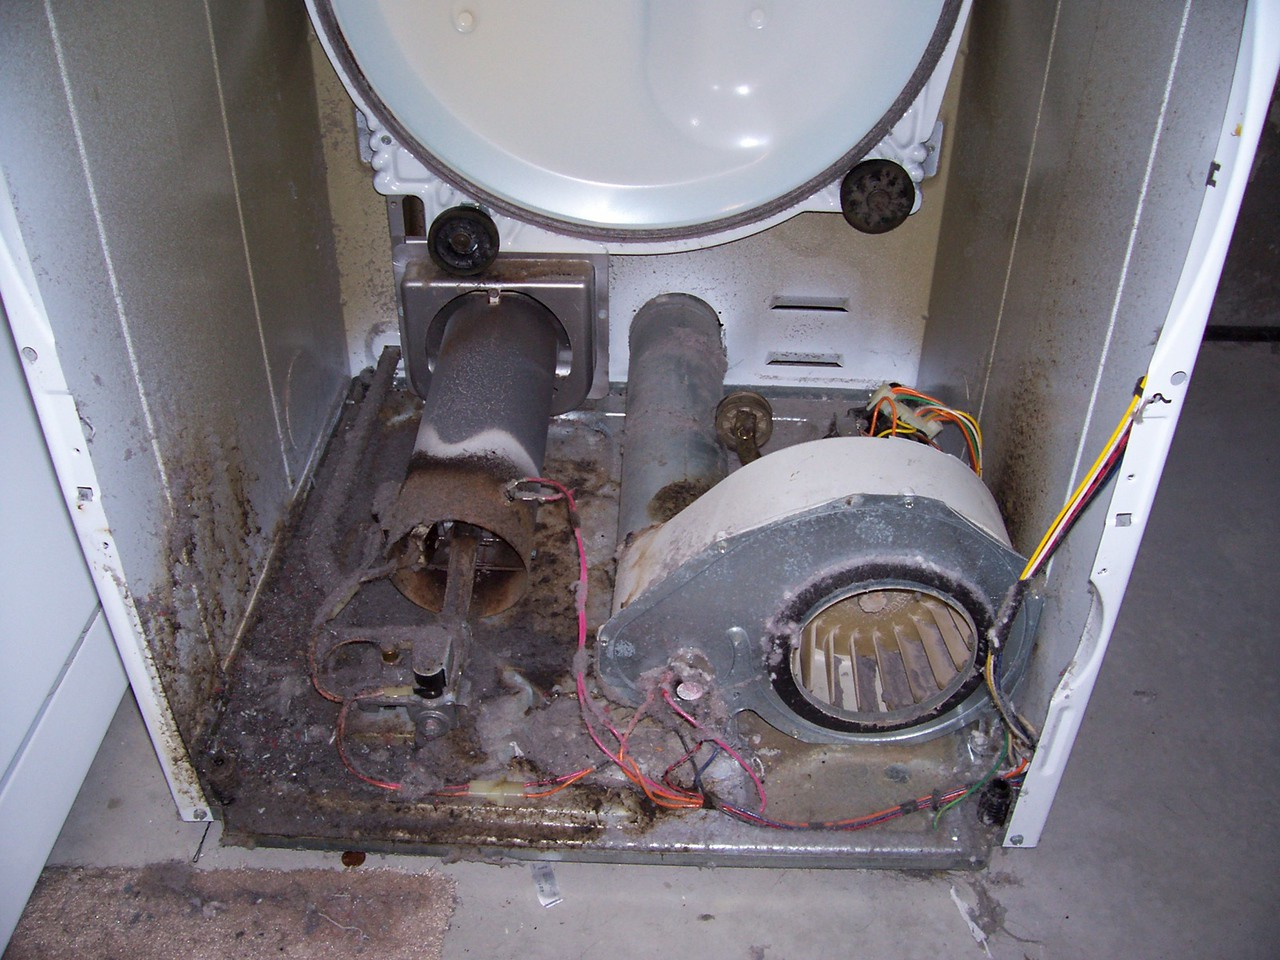 Amana Dryer Guts, Before Cleaning